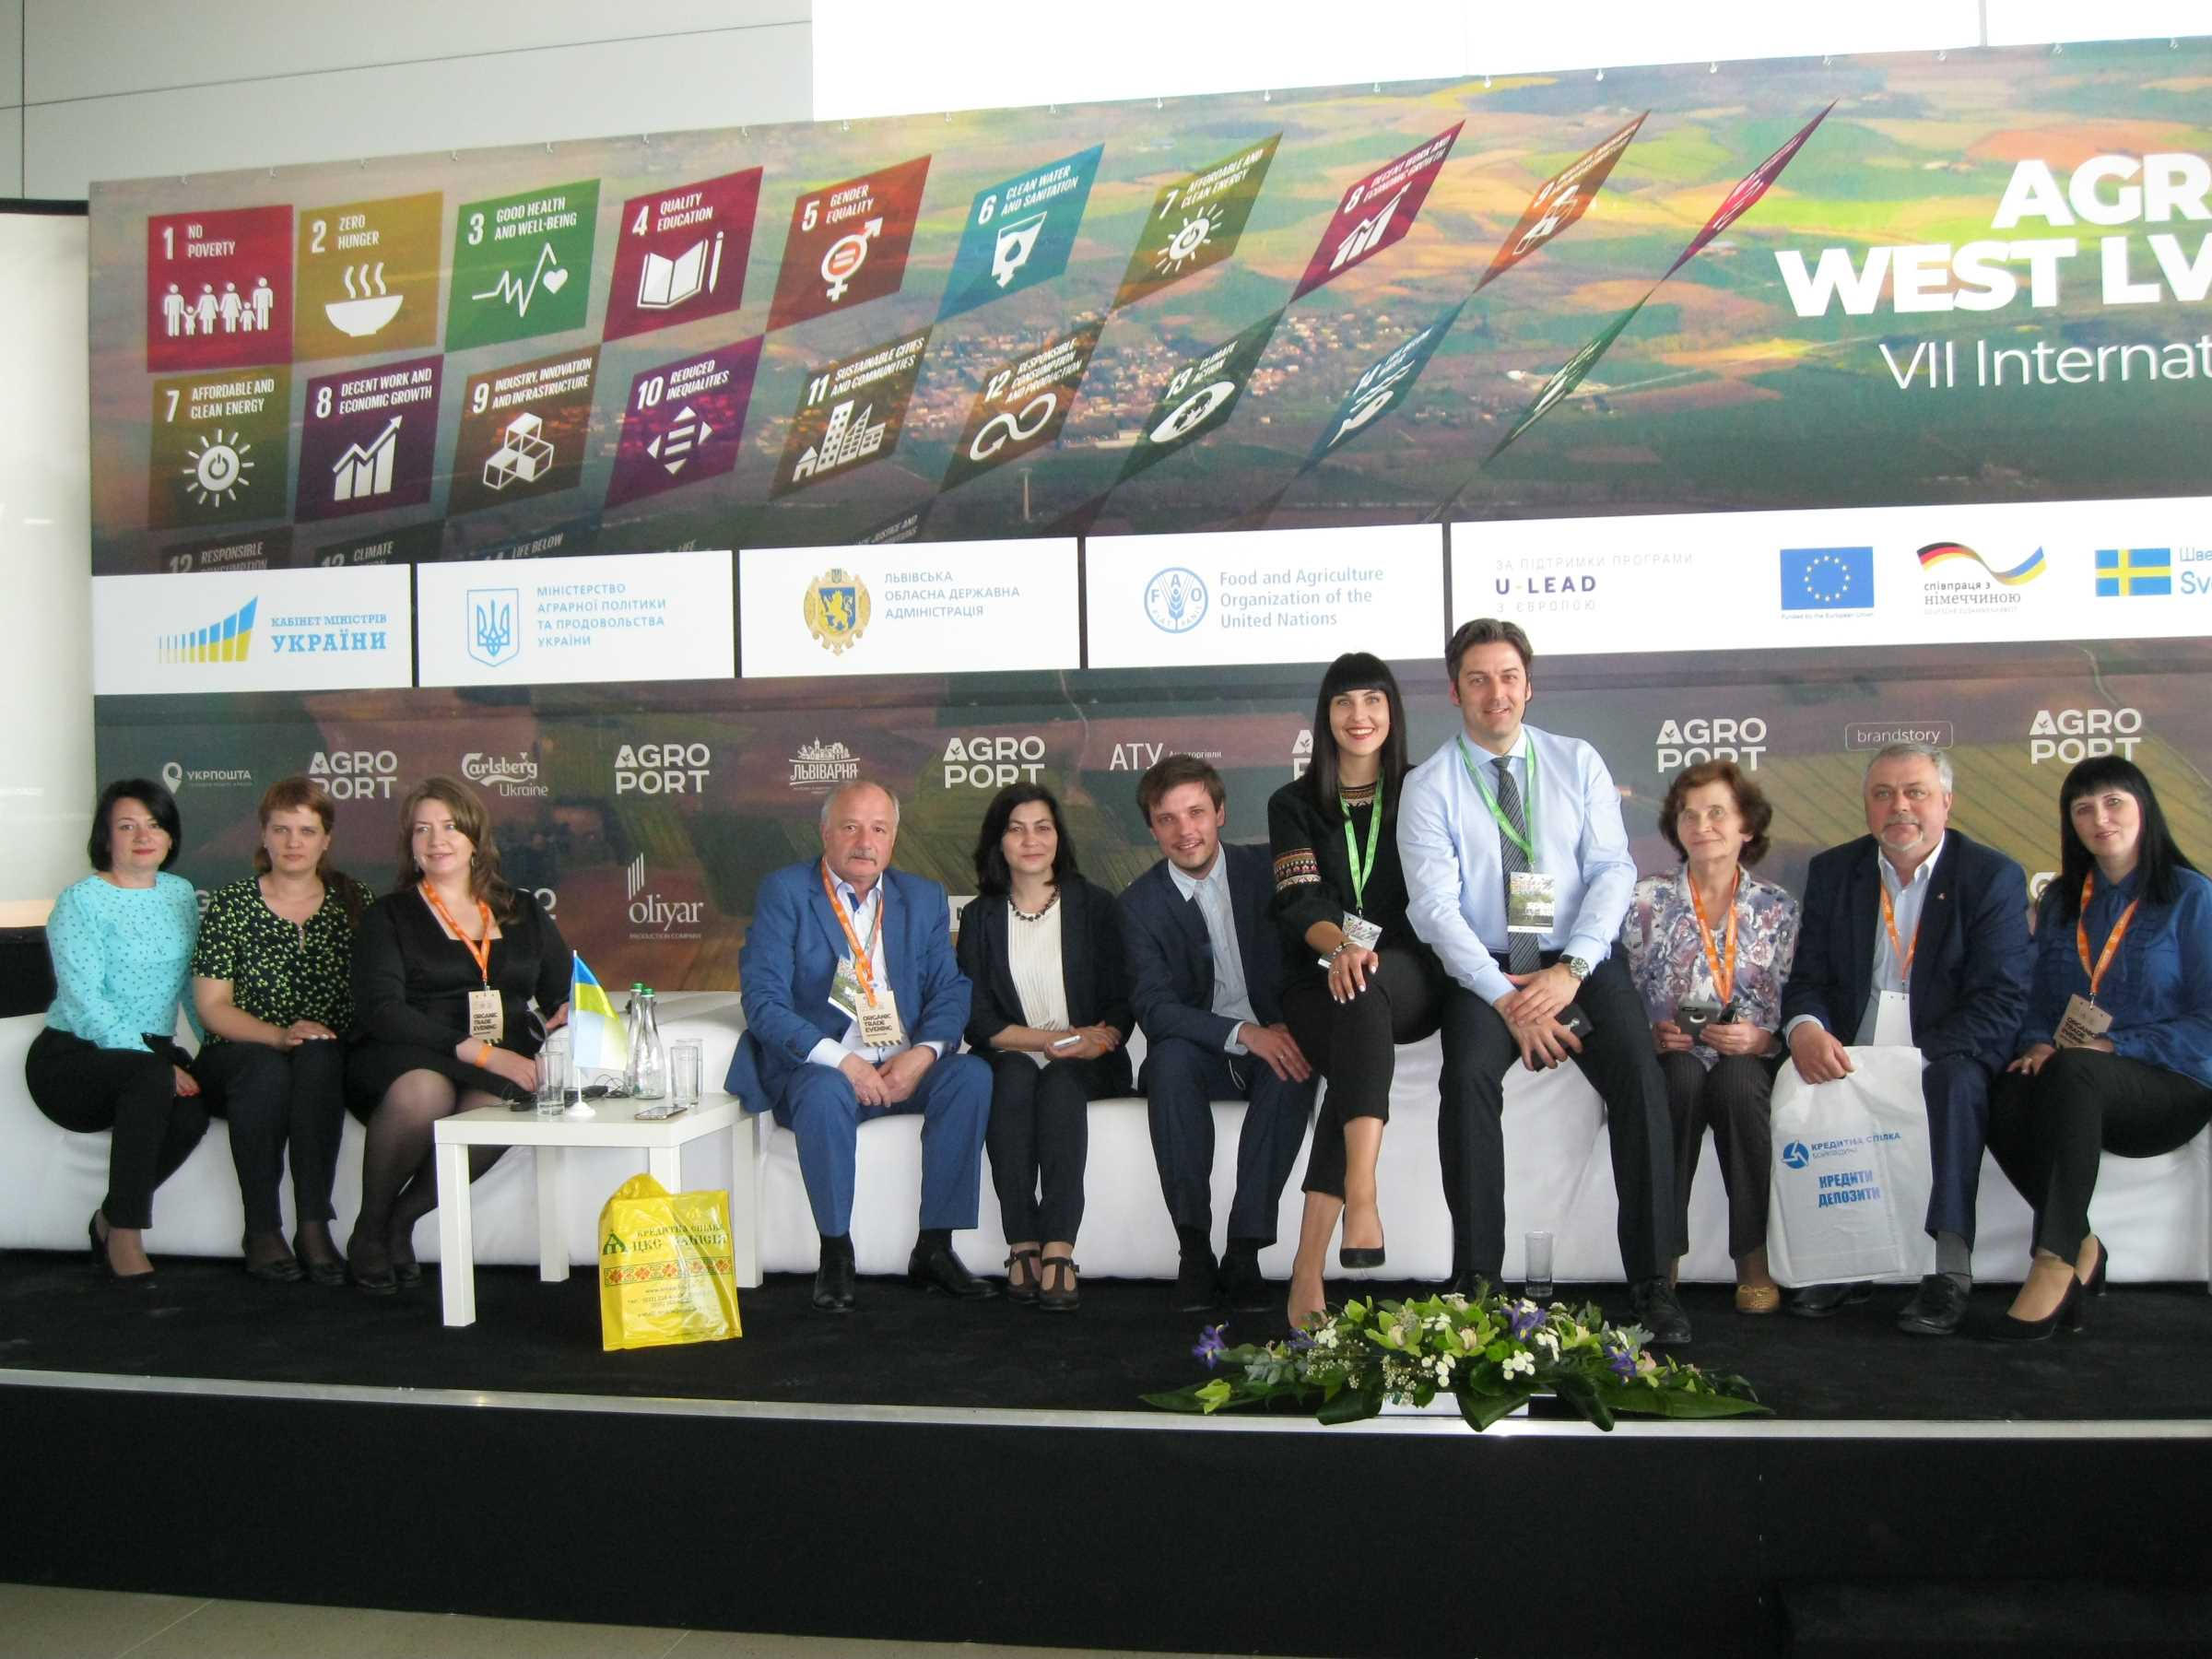 AGROPORT WEST LVIV 2018